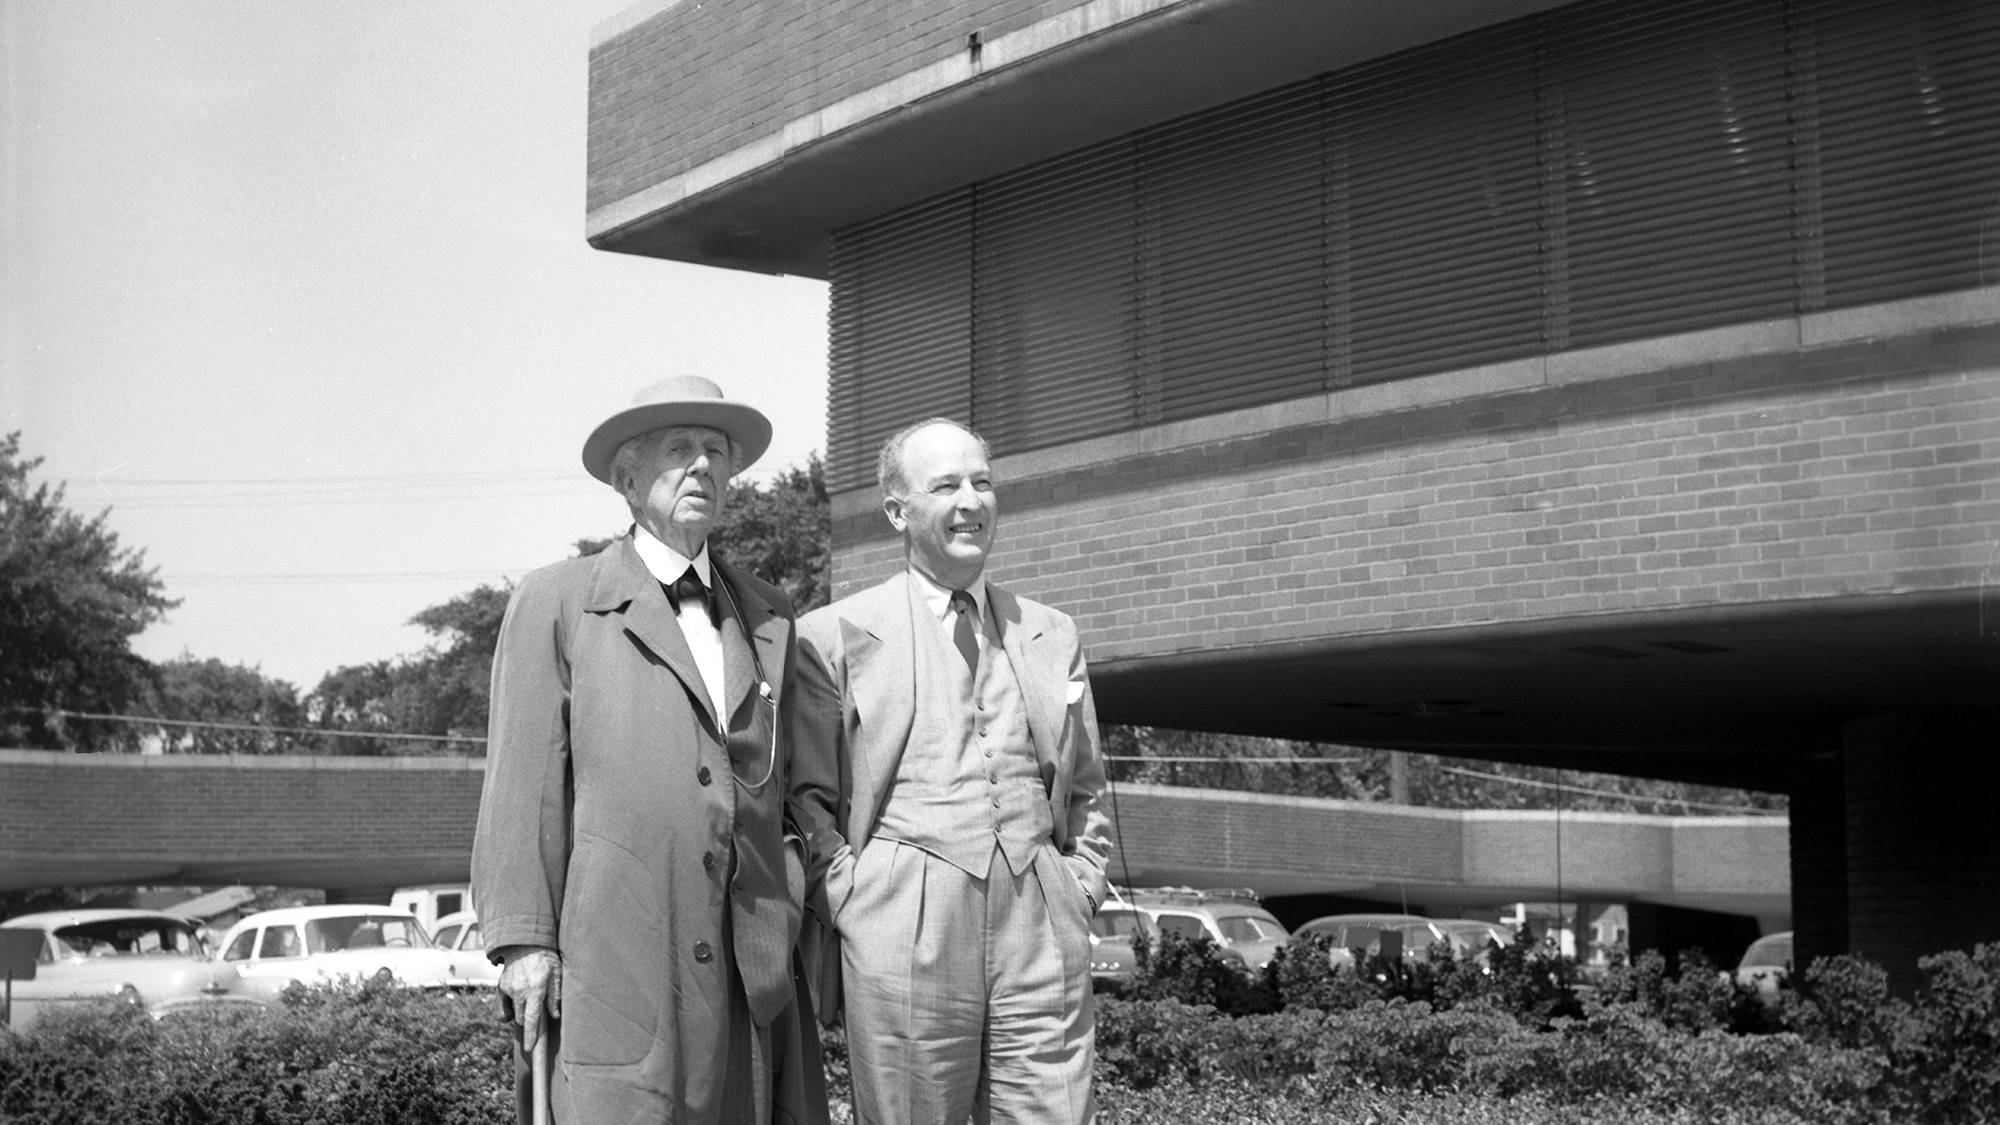 H.F. Johnson Jr. e Frank Lloyd Wright